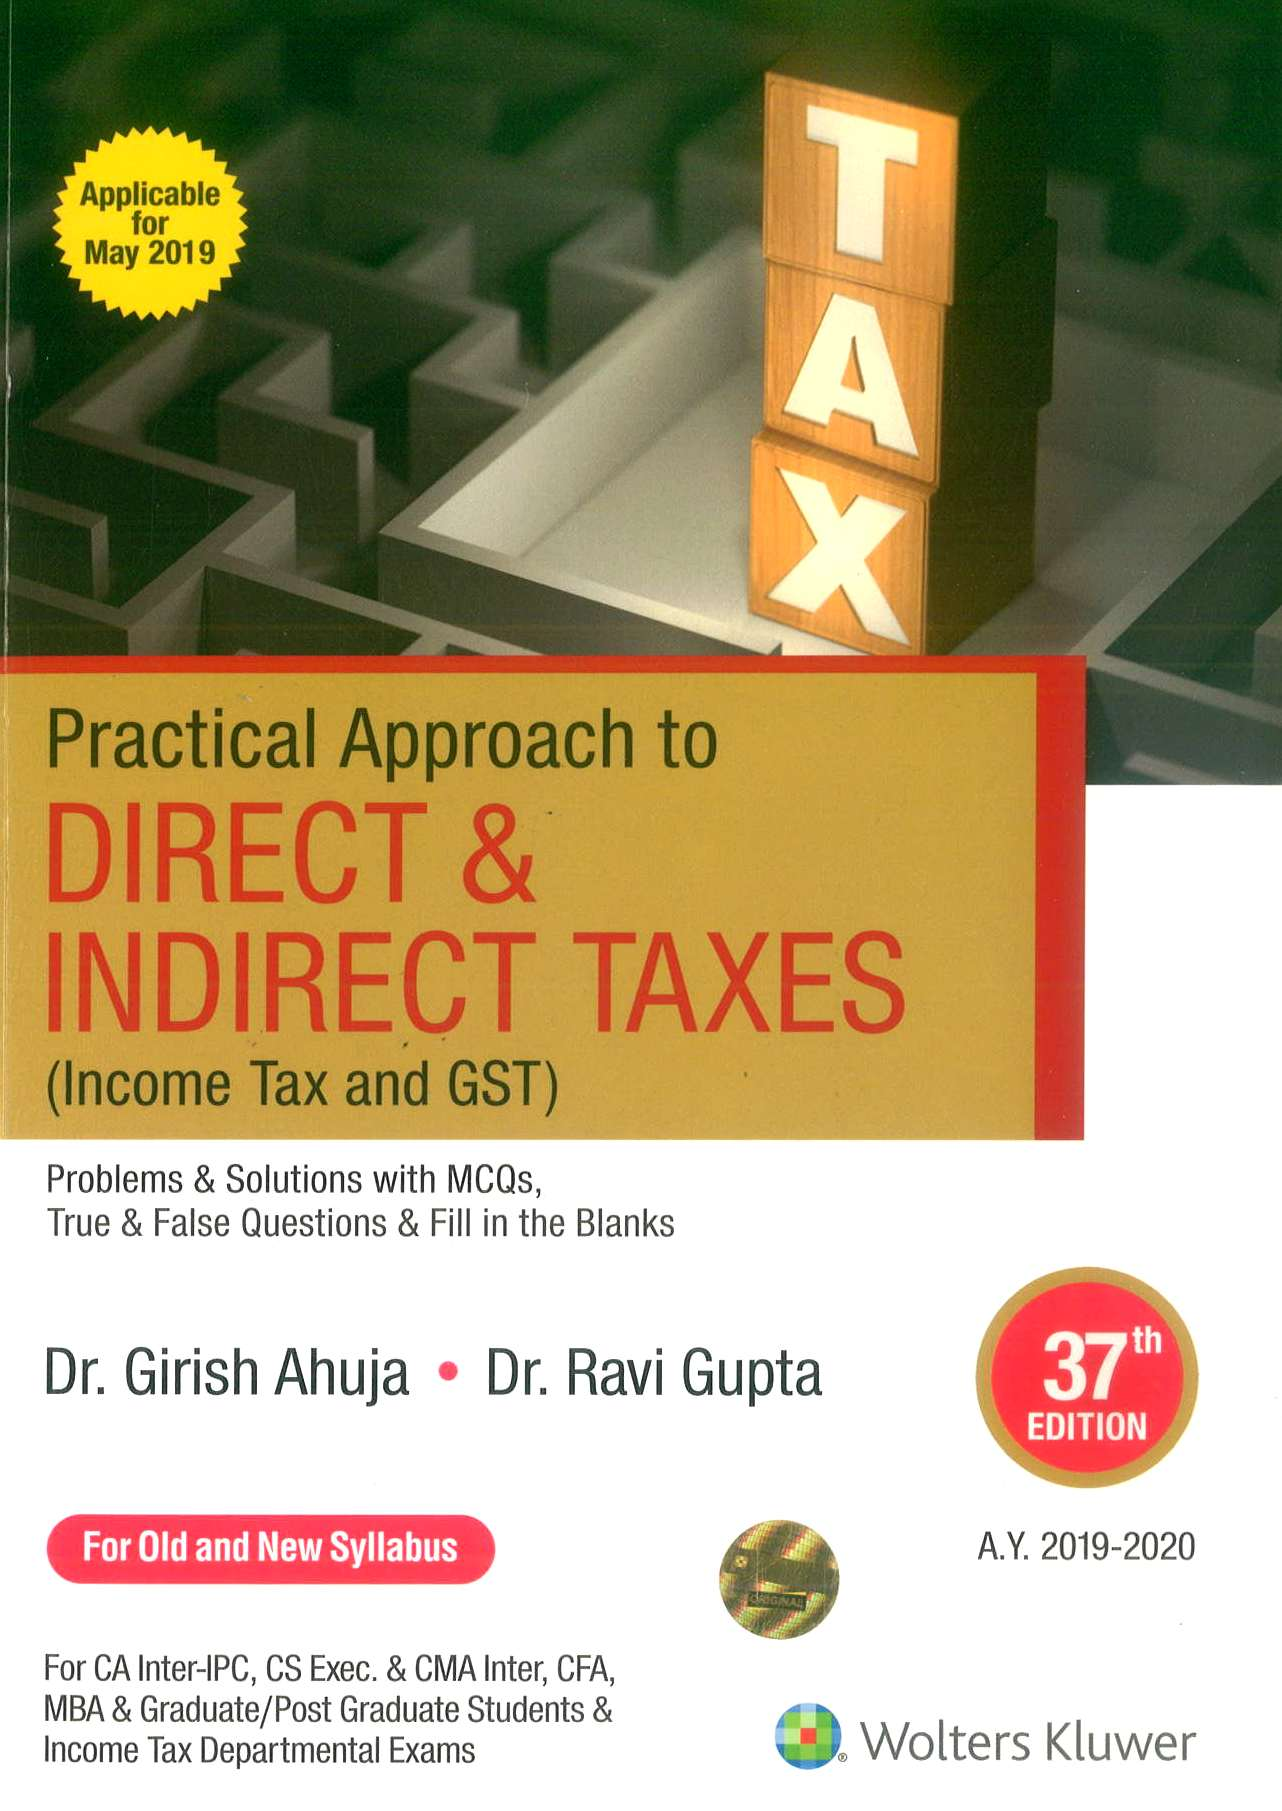 CCH Practical Approach to Direct & Indirect Taxes (A.Y. 2019-2020) For CA IPCC By Dr Girish Ahuja Dr Ravi Gupta Applicable for 37th edition May 2019 Exam